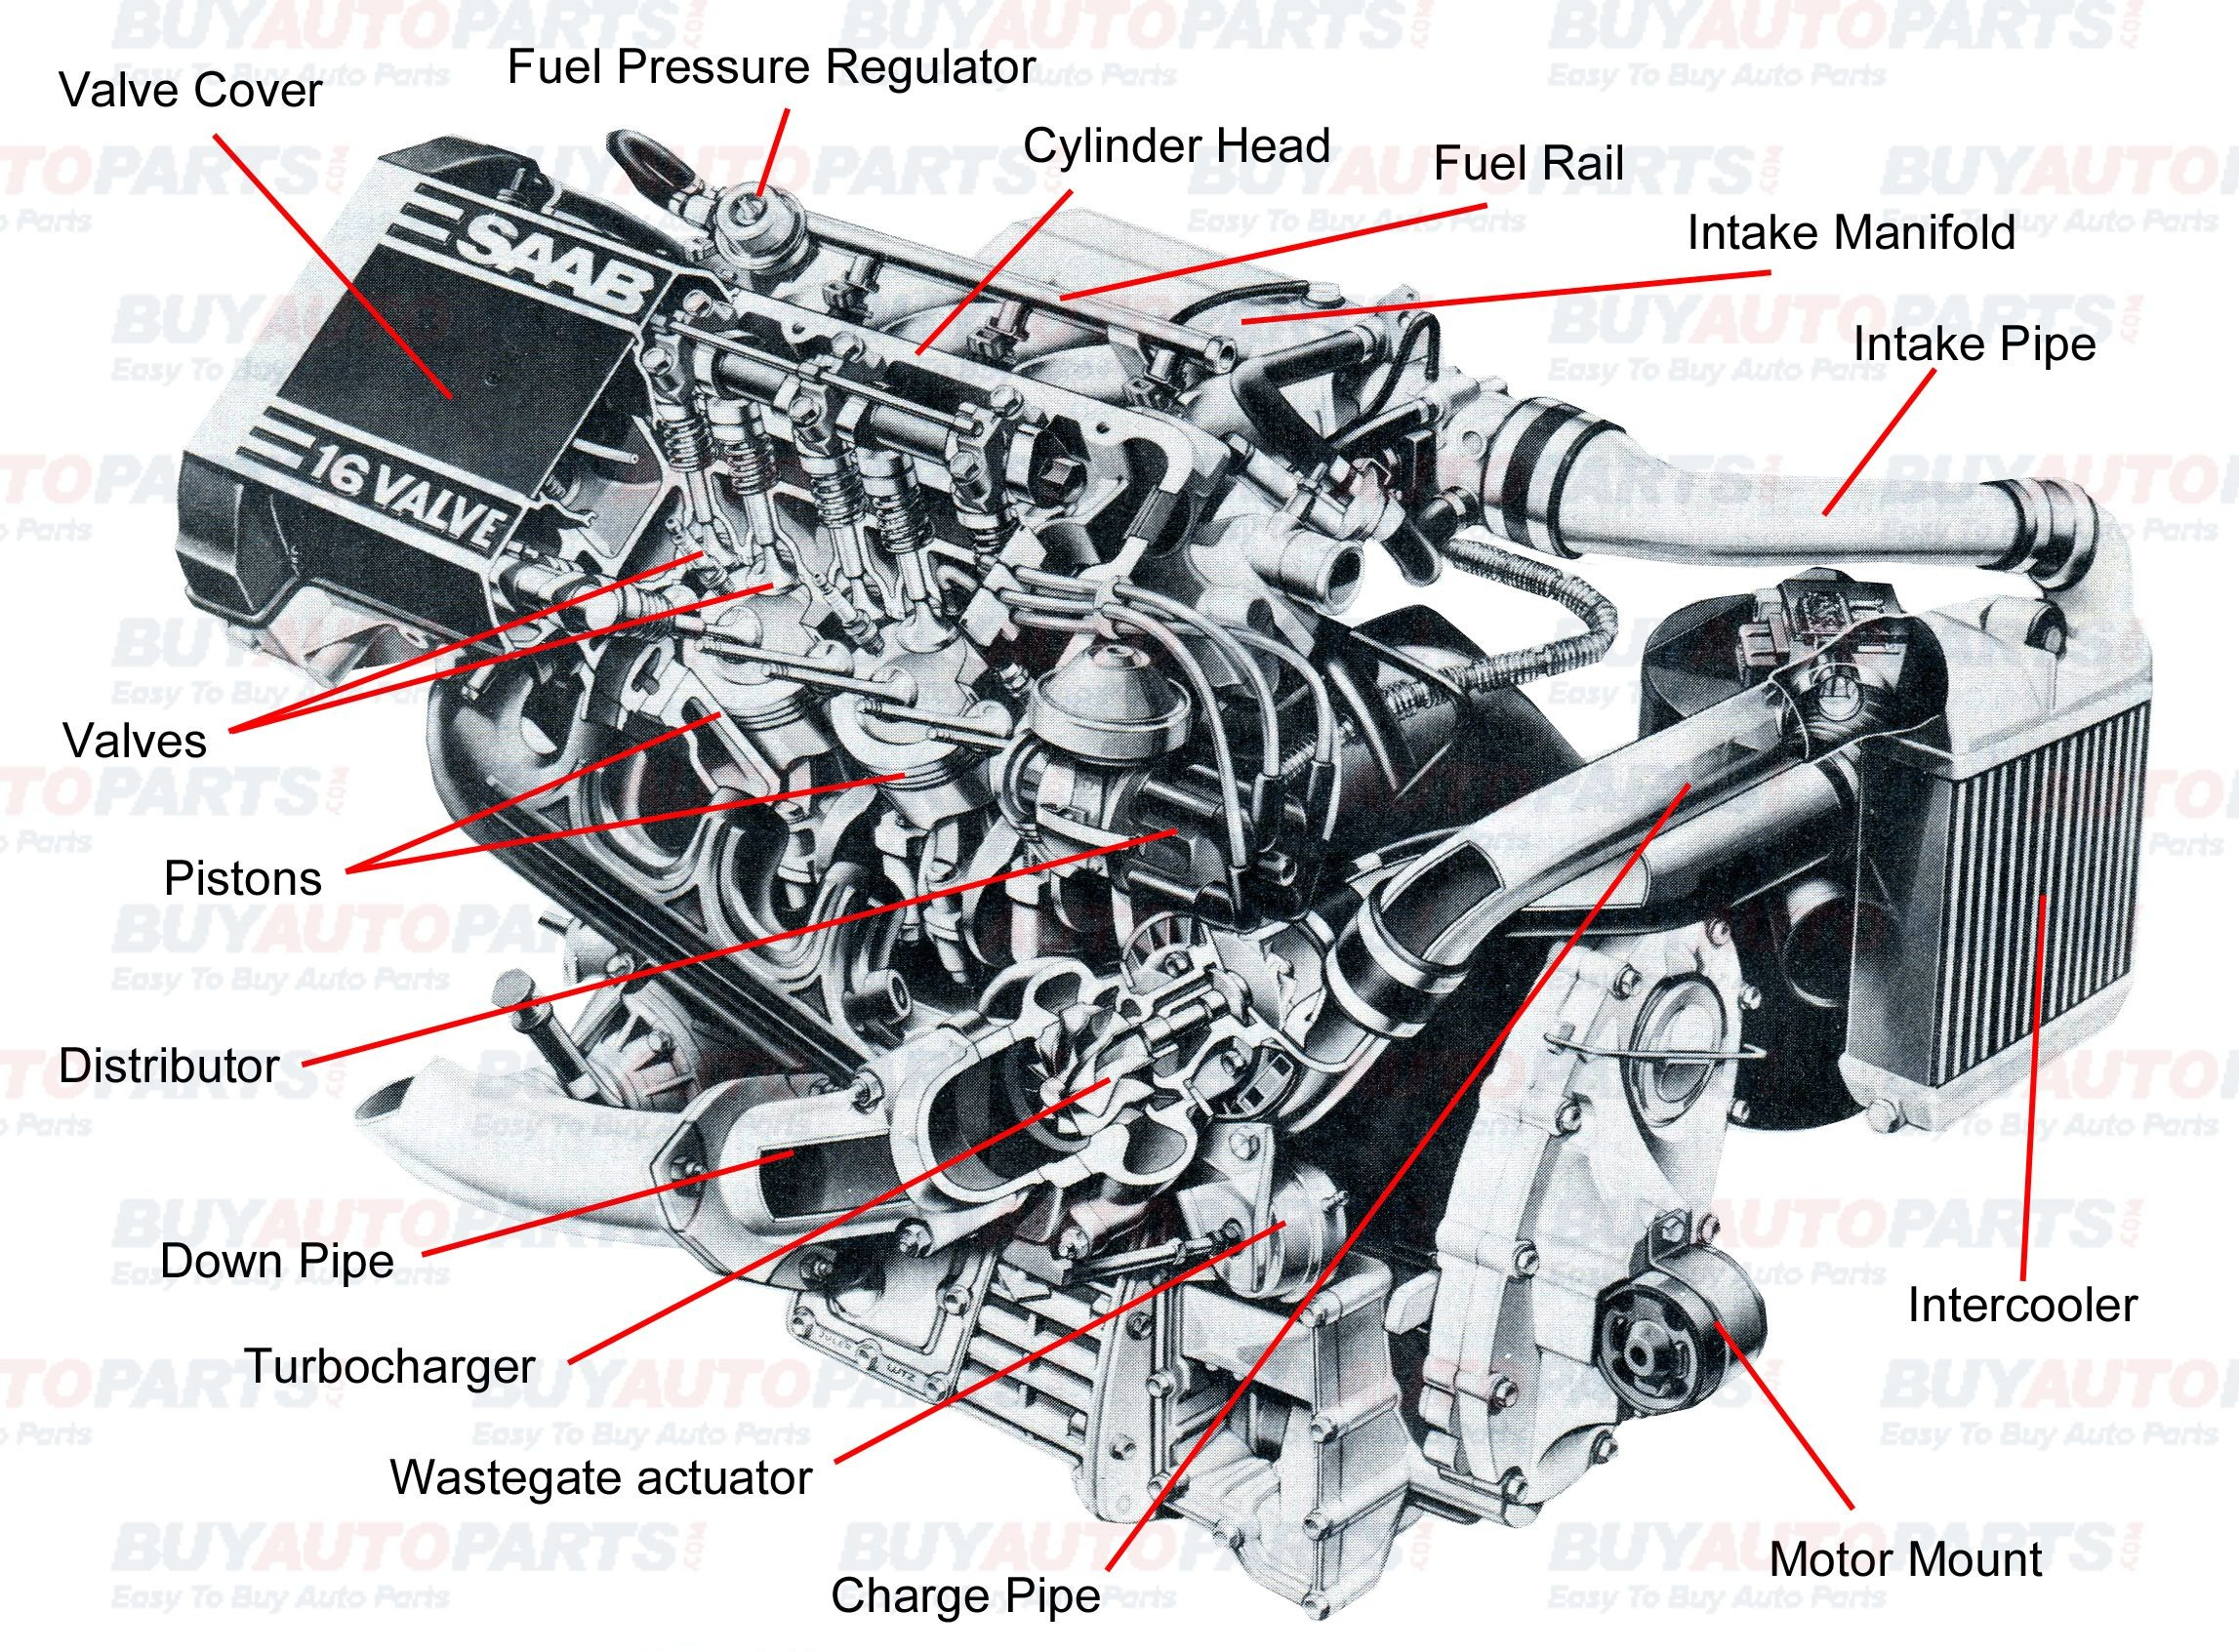 Engine Diagrams for Cars Pin by Jimmiejanet Testellamwfz On What Does An Engine with Turbo Of Engine Diagrams for Cars